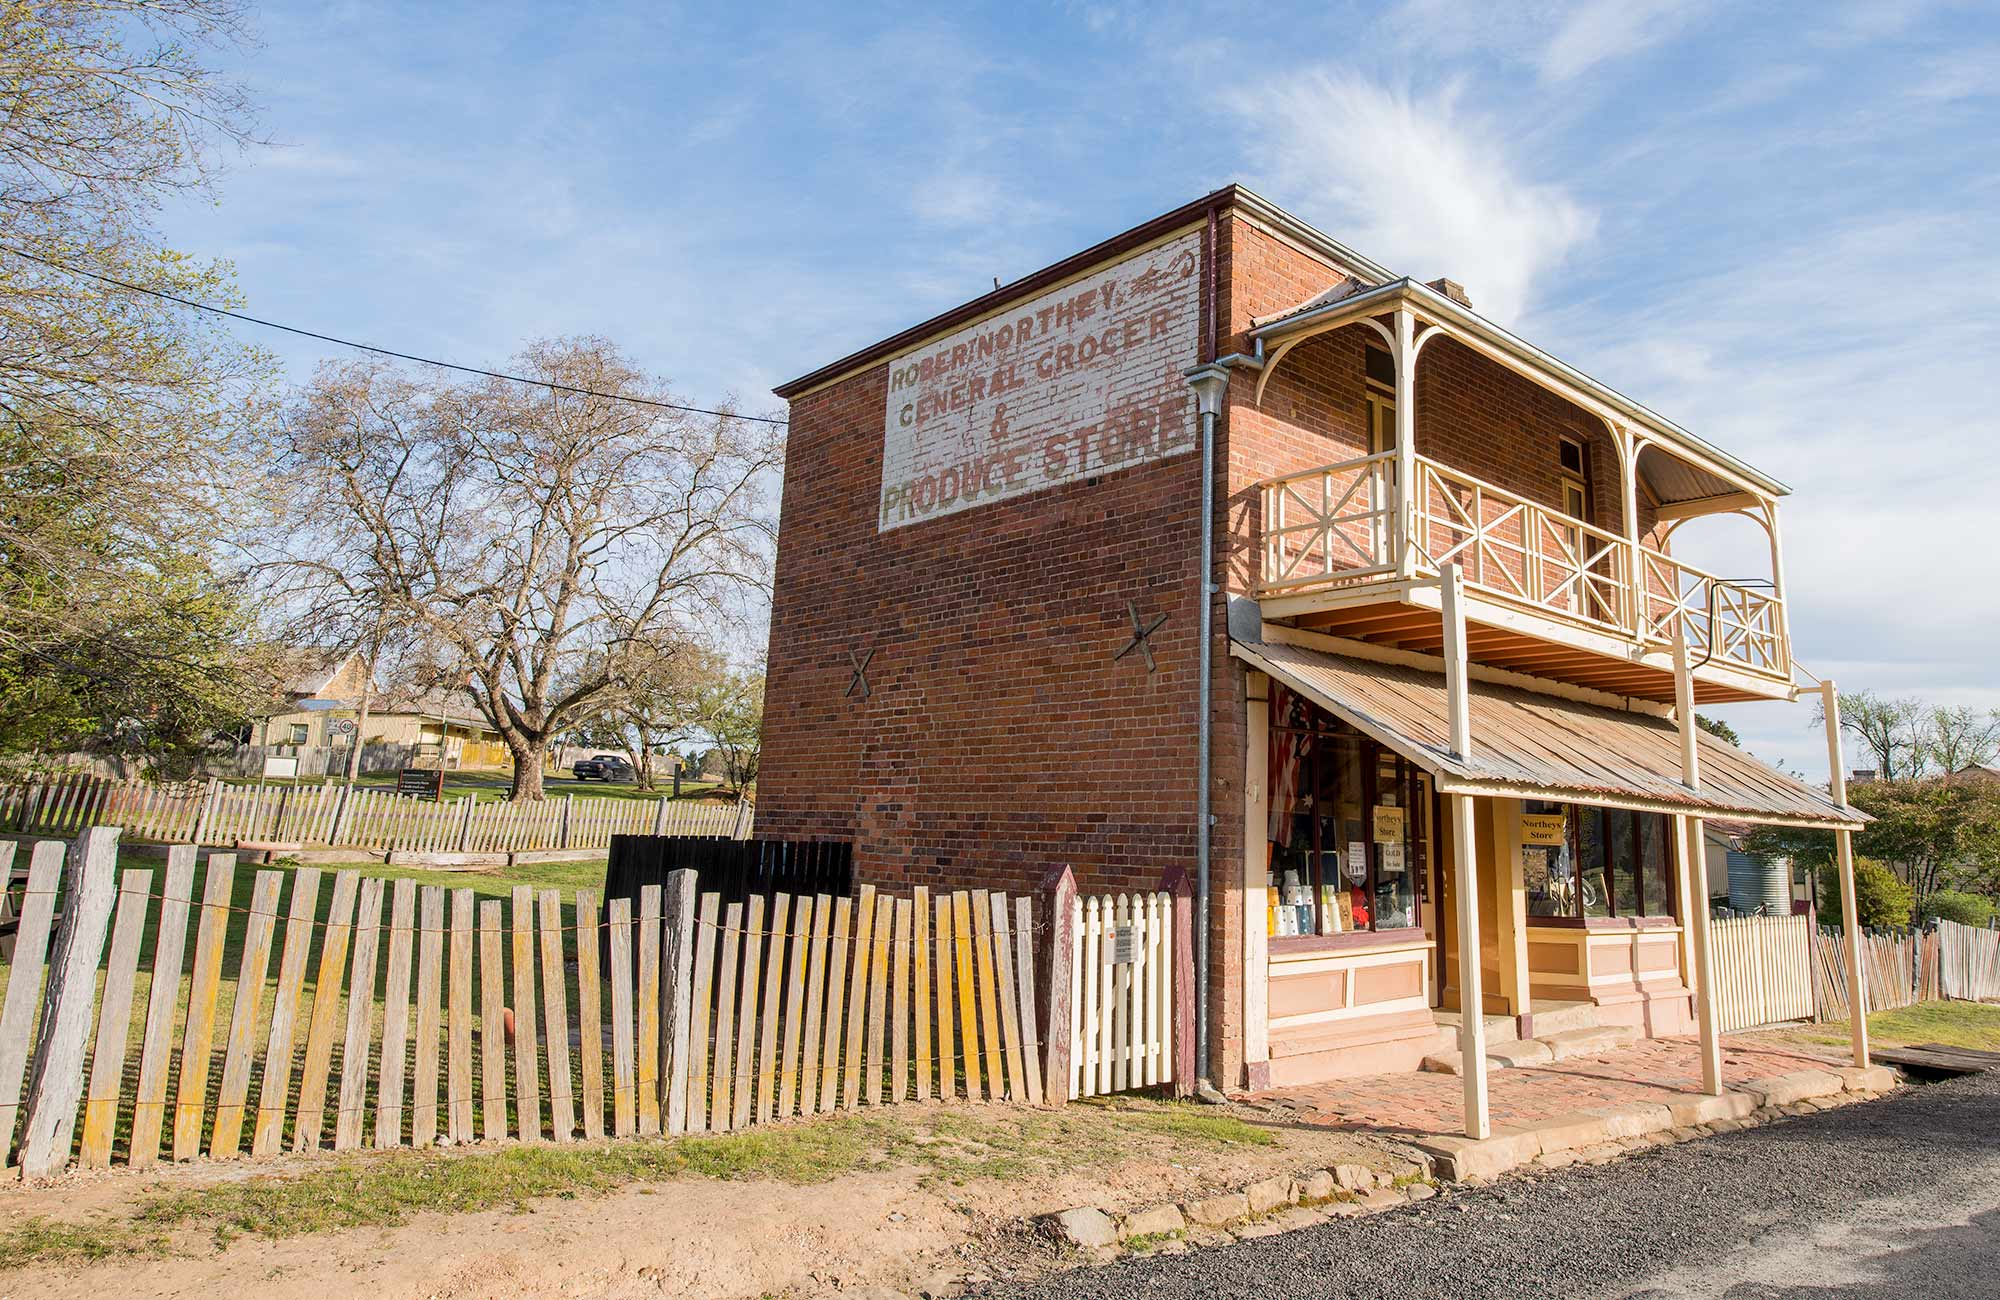 Northeys Store, Hill End Historic Site. Photo: John Spencer